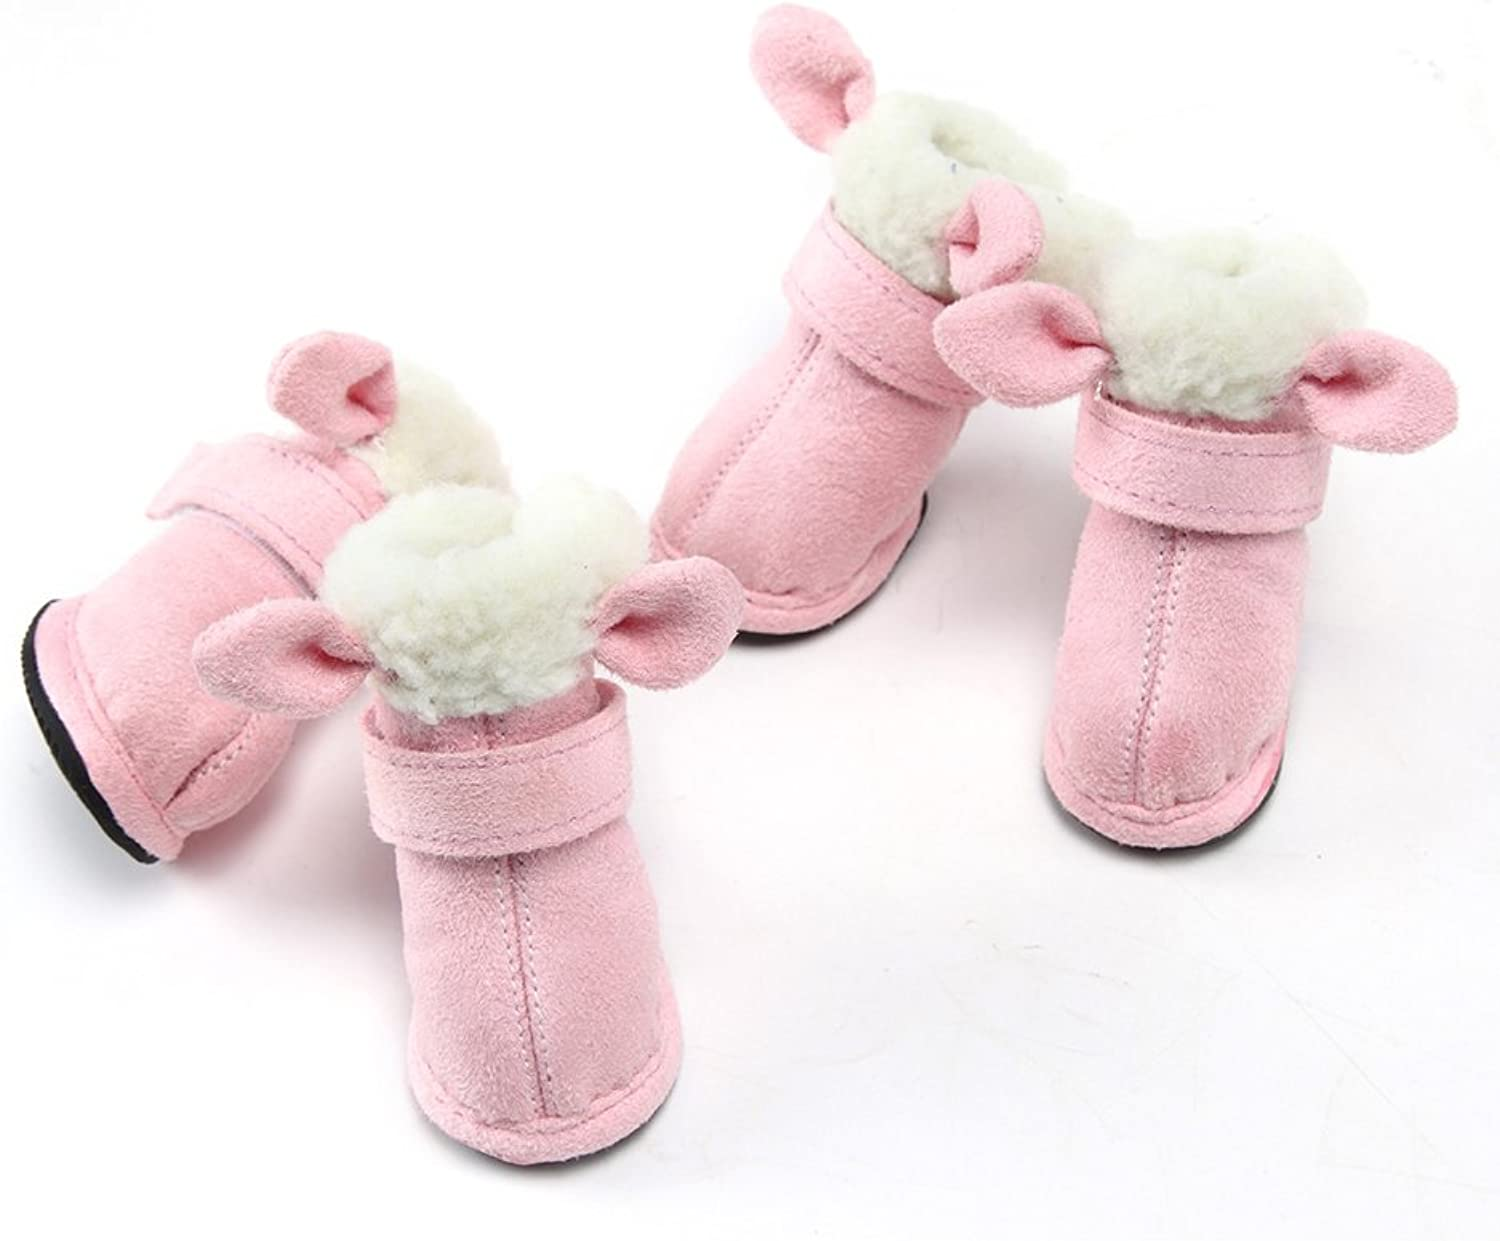 Dog shoes Booties Waterproof AntiSlip Paw Predectors Suit for Winter Fall Coffee Pink Warm